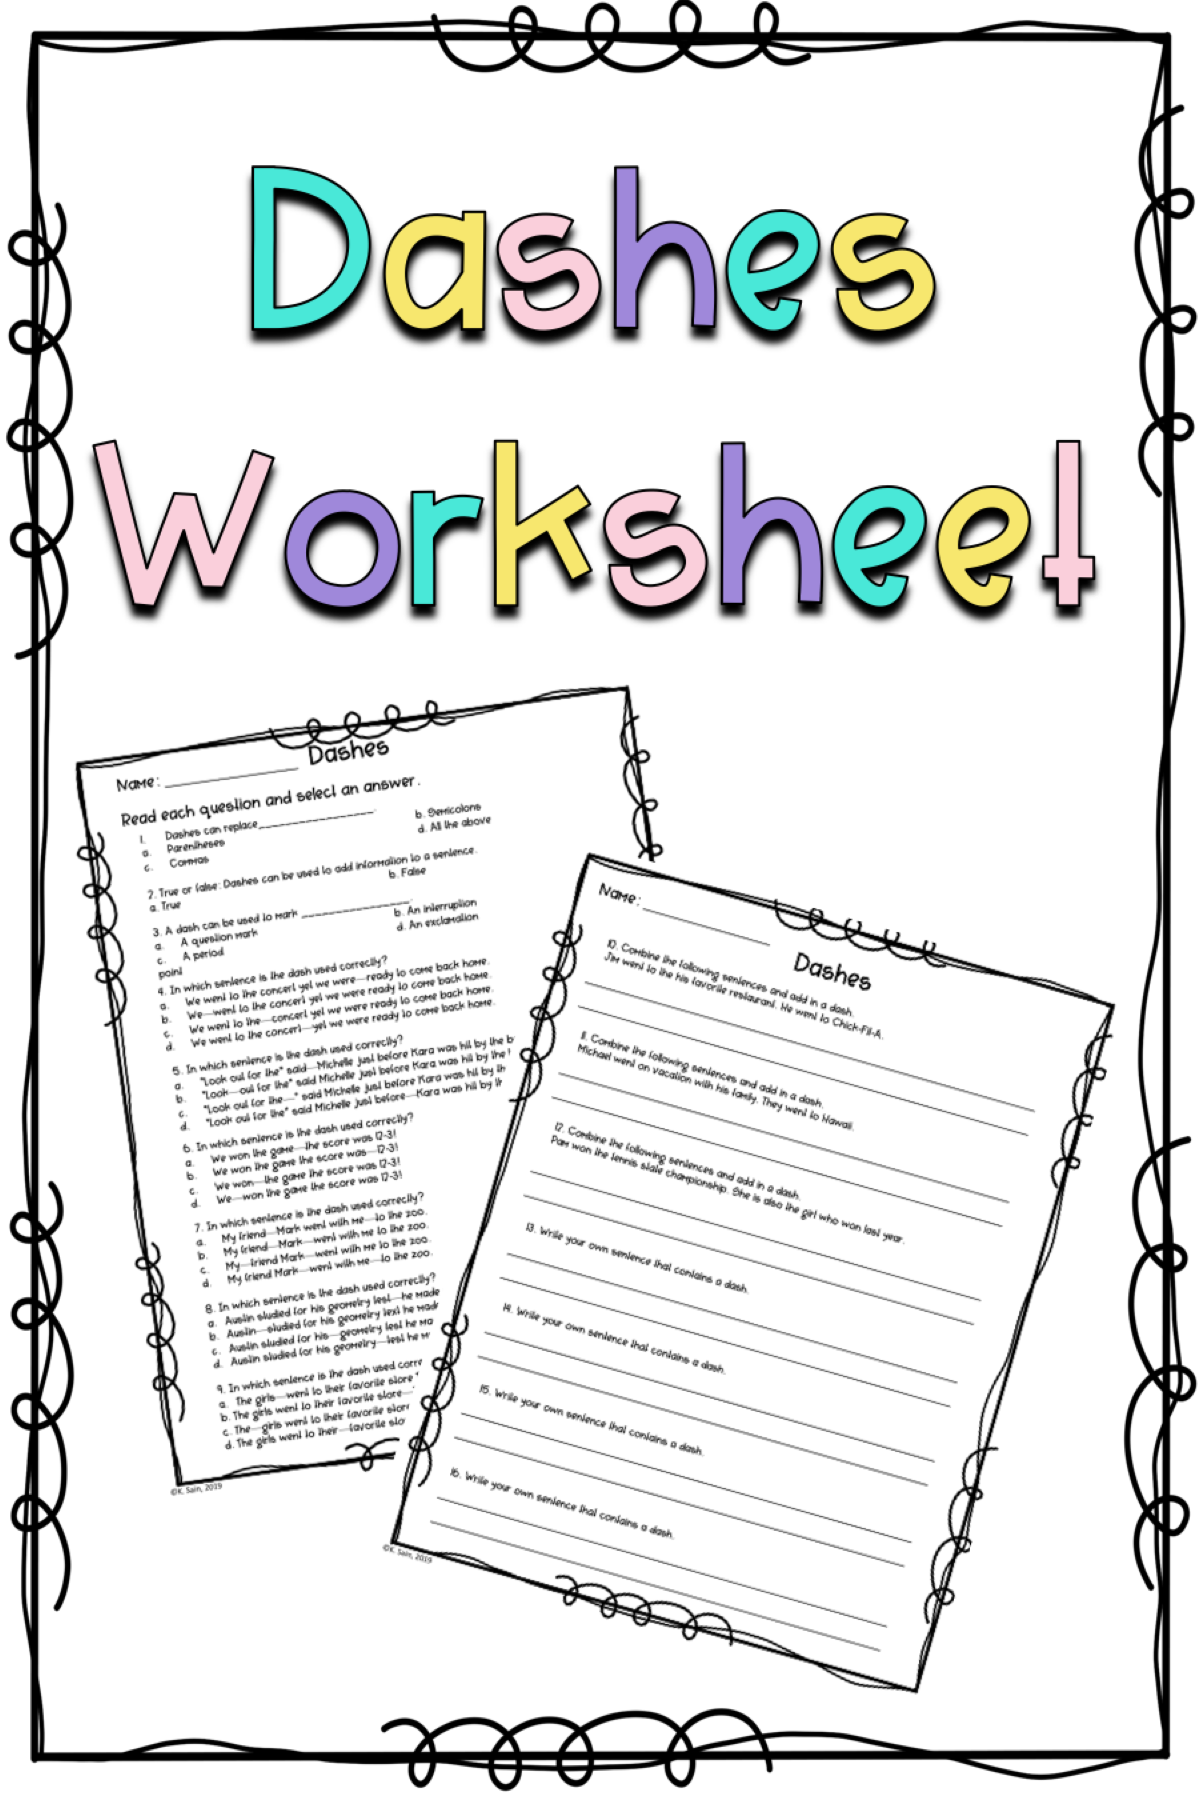 Dashes Worksheet Or Assessment In